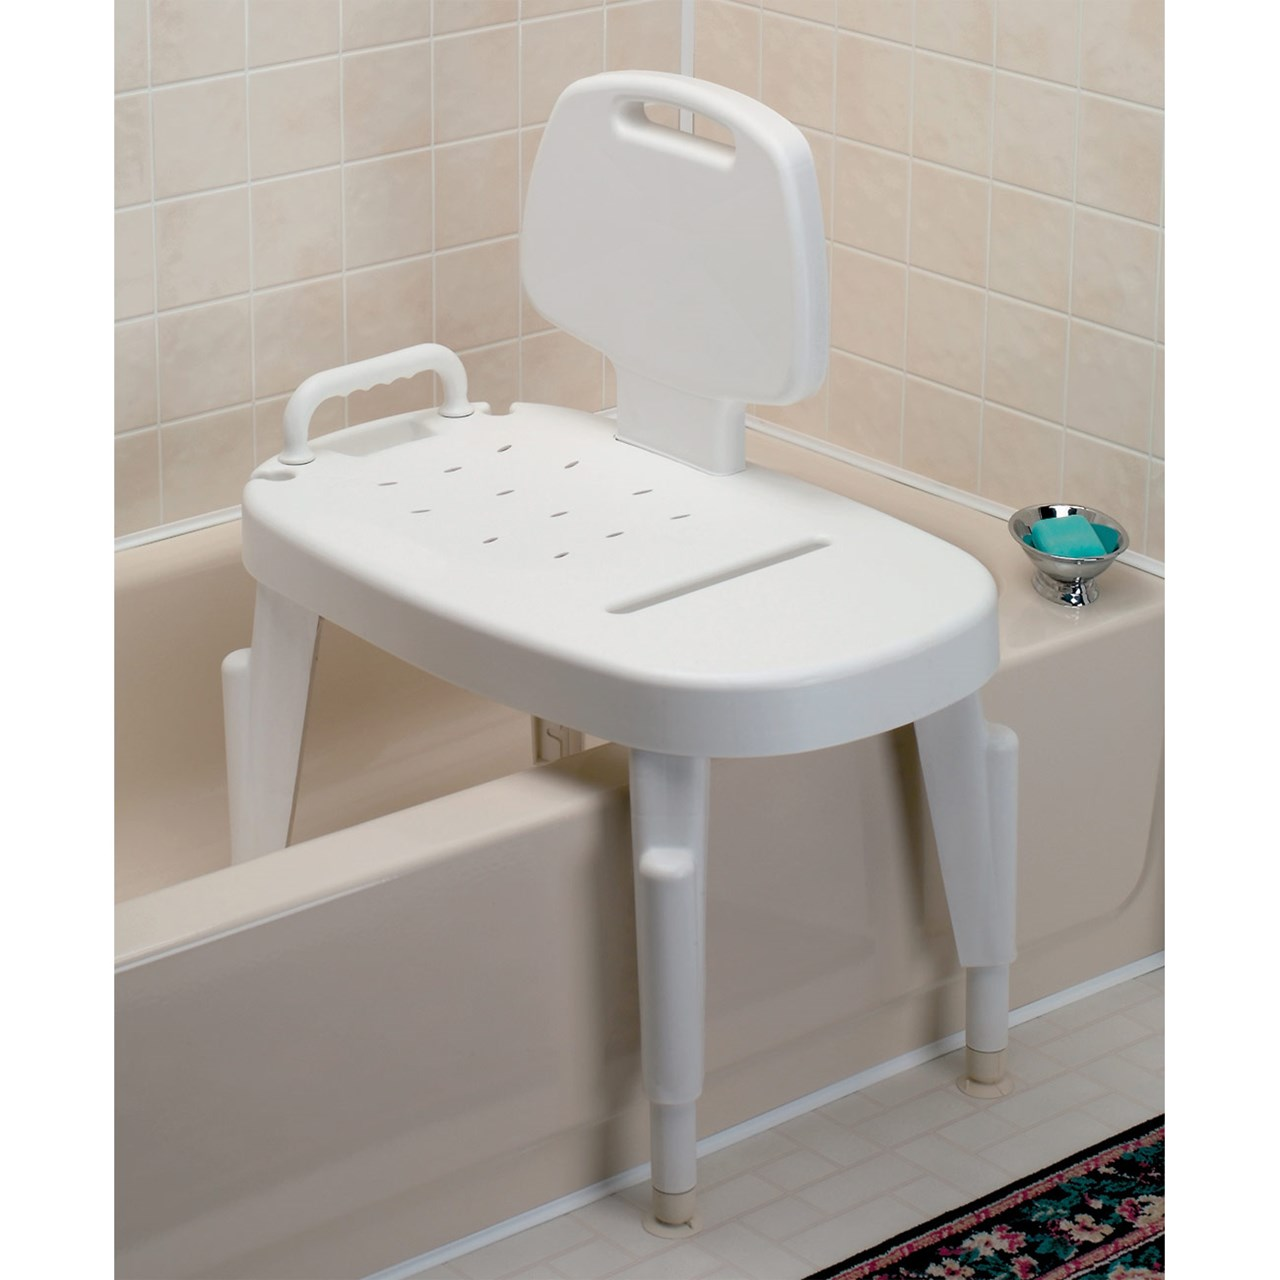 Chair For Bathtub Maxiaids Adjustable Transfer Bench